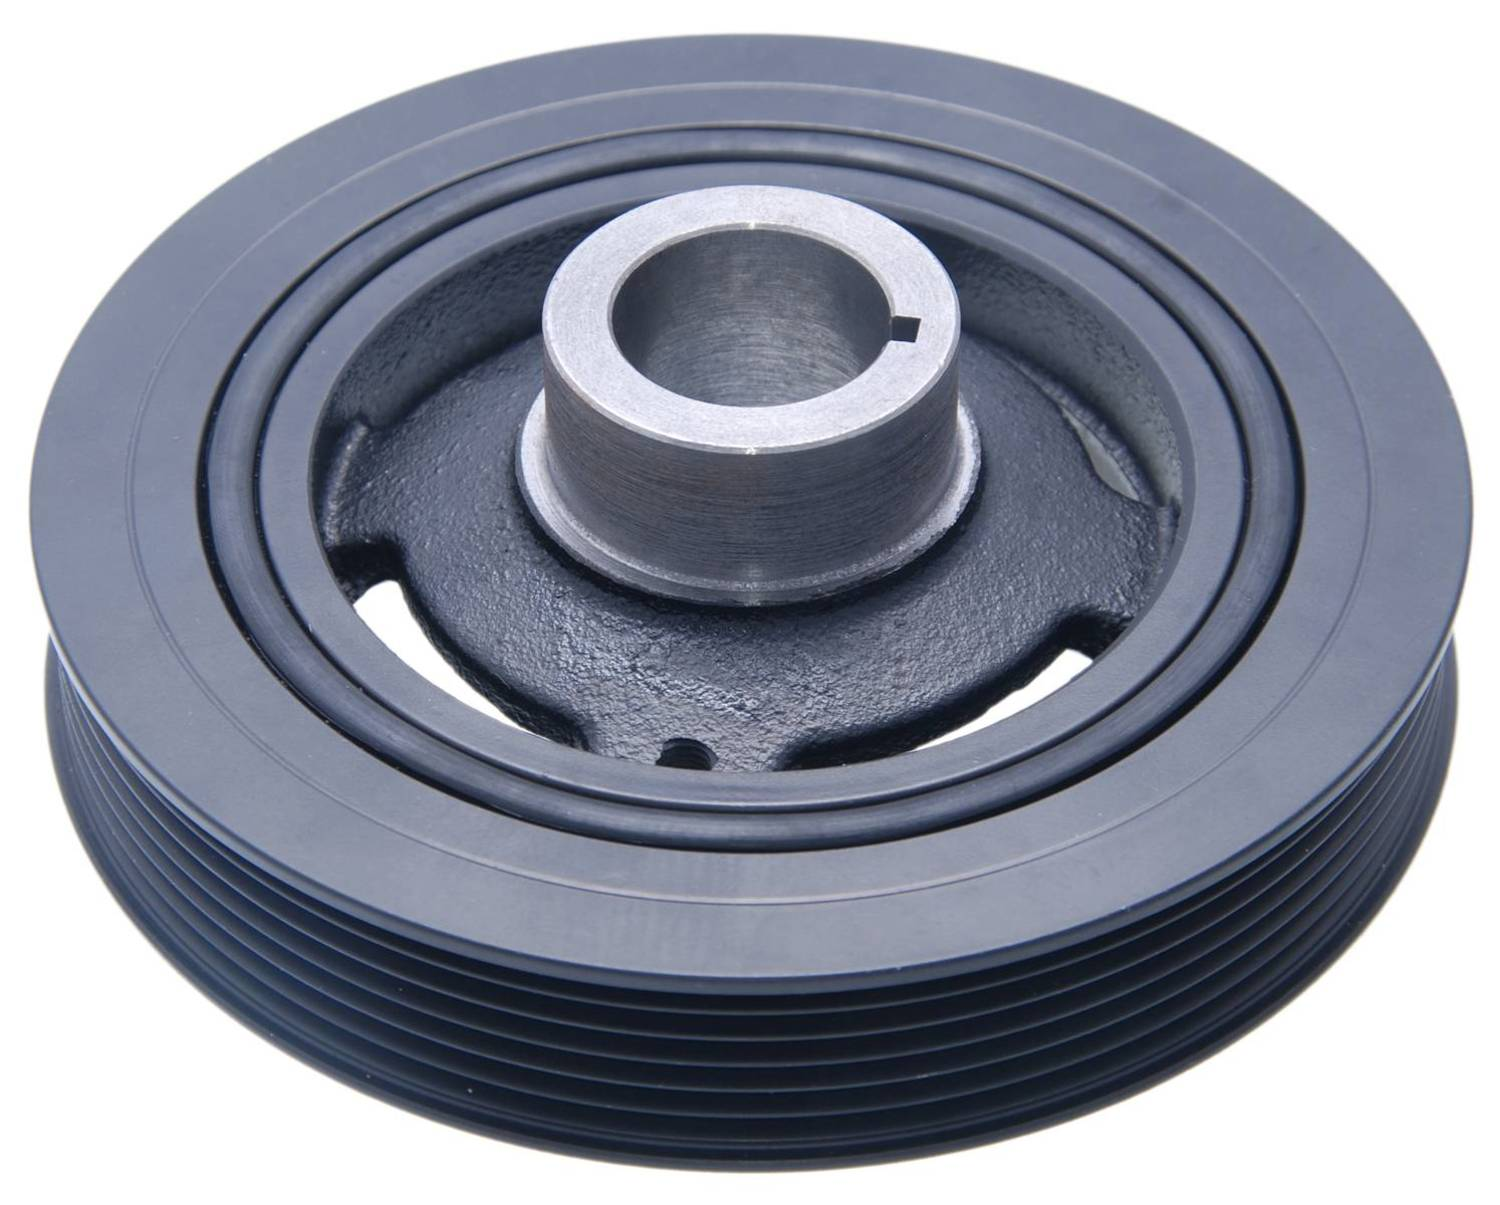 Febest 2007 Hyundai Sonata - Engine Crankshaft Pulley FEBEST # HYDS-IX35 OEM # 23124-2G600 at Sears.com